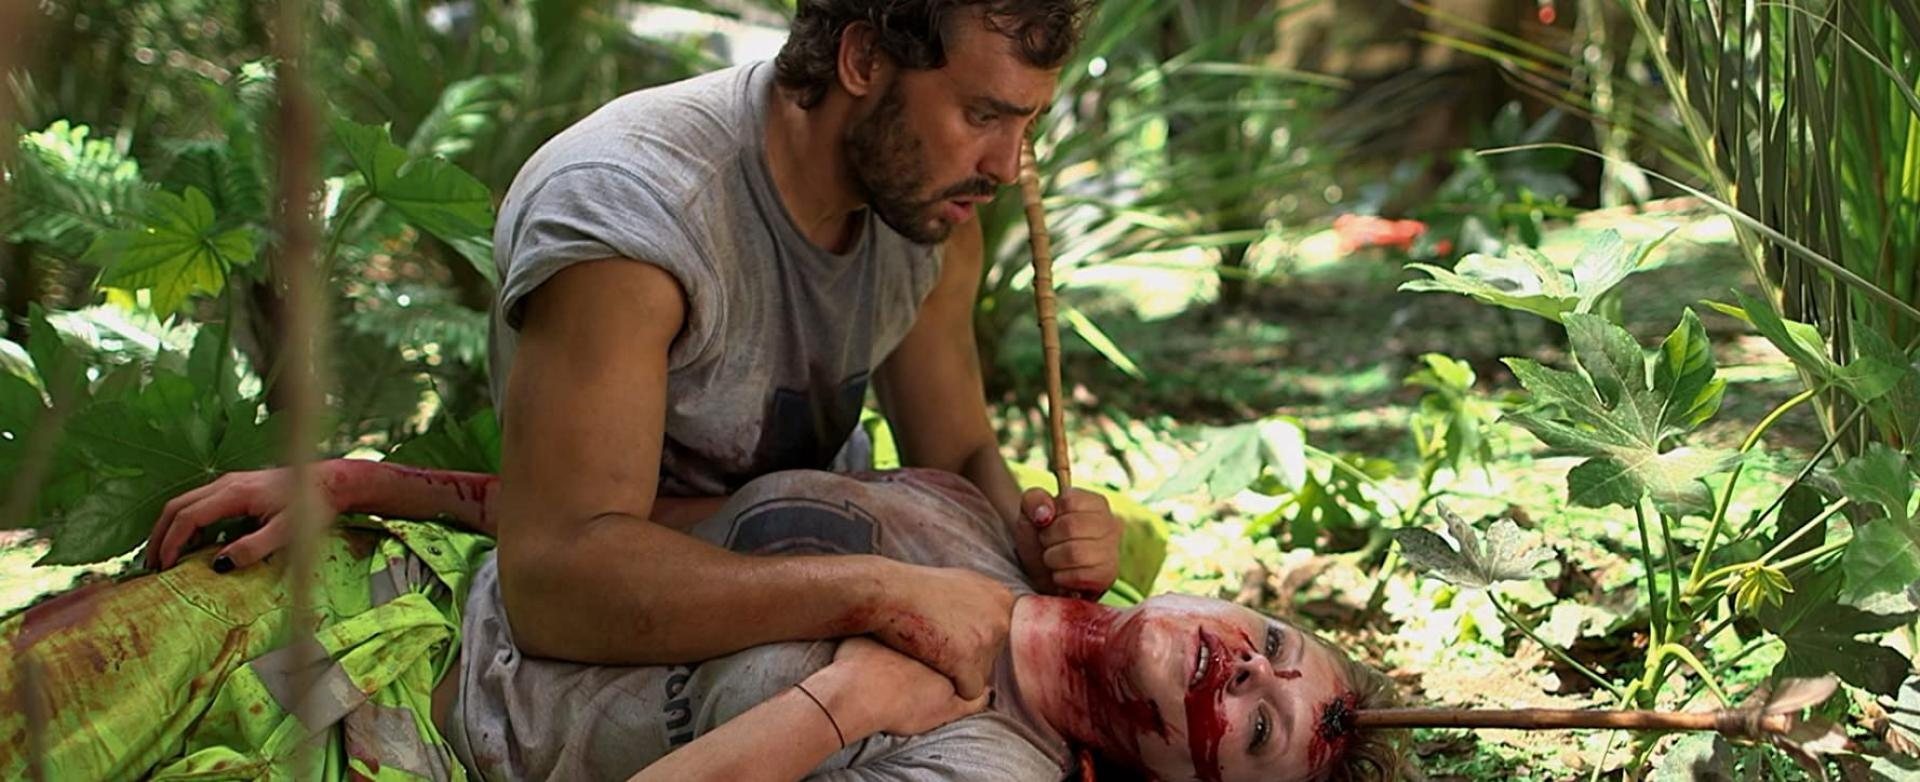 the_green_inferno_3_kep